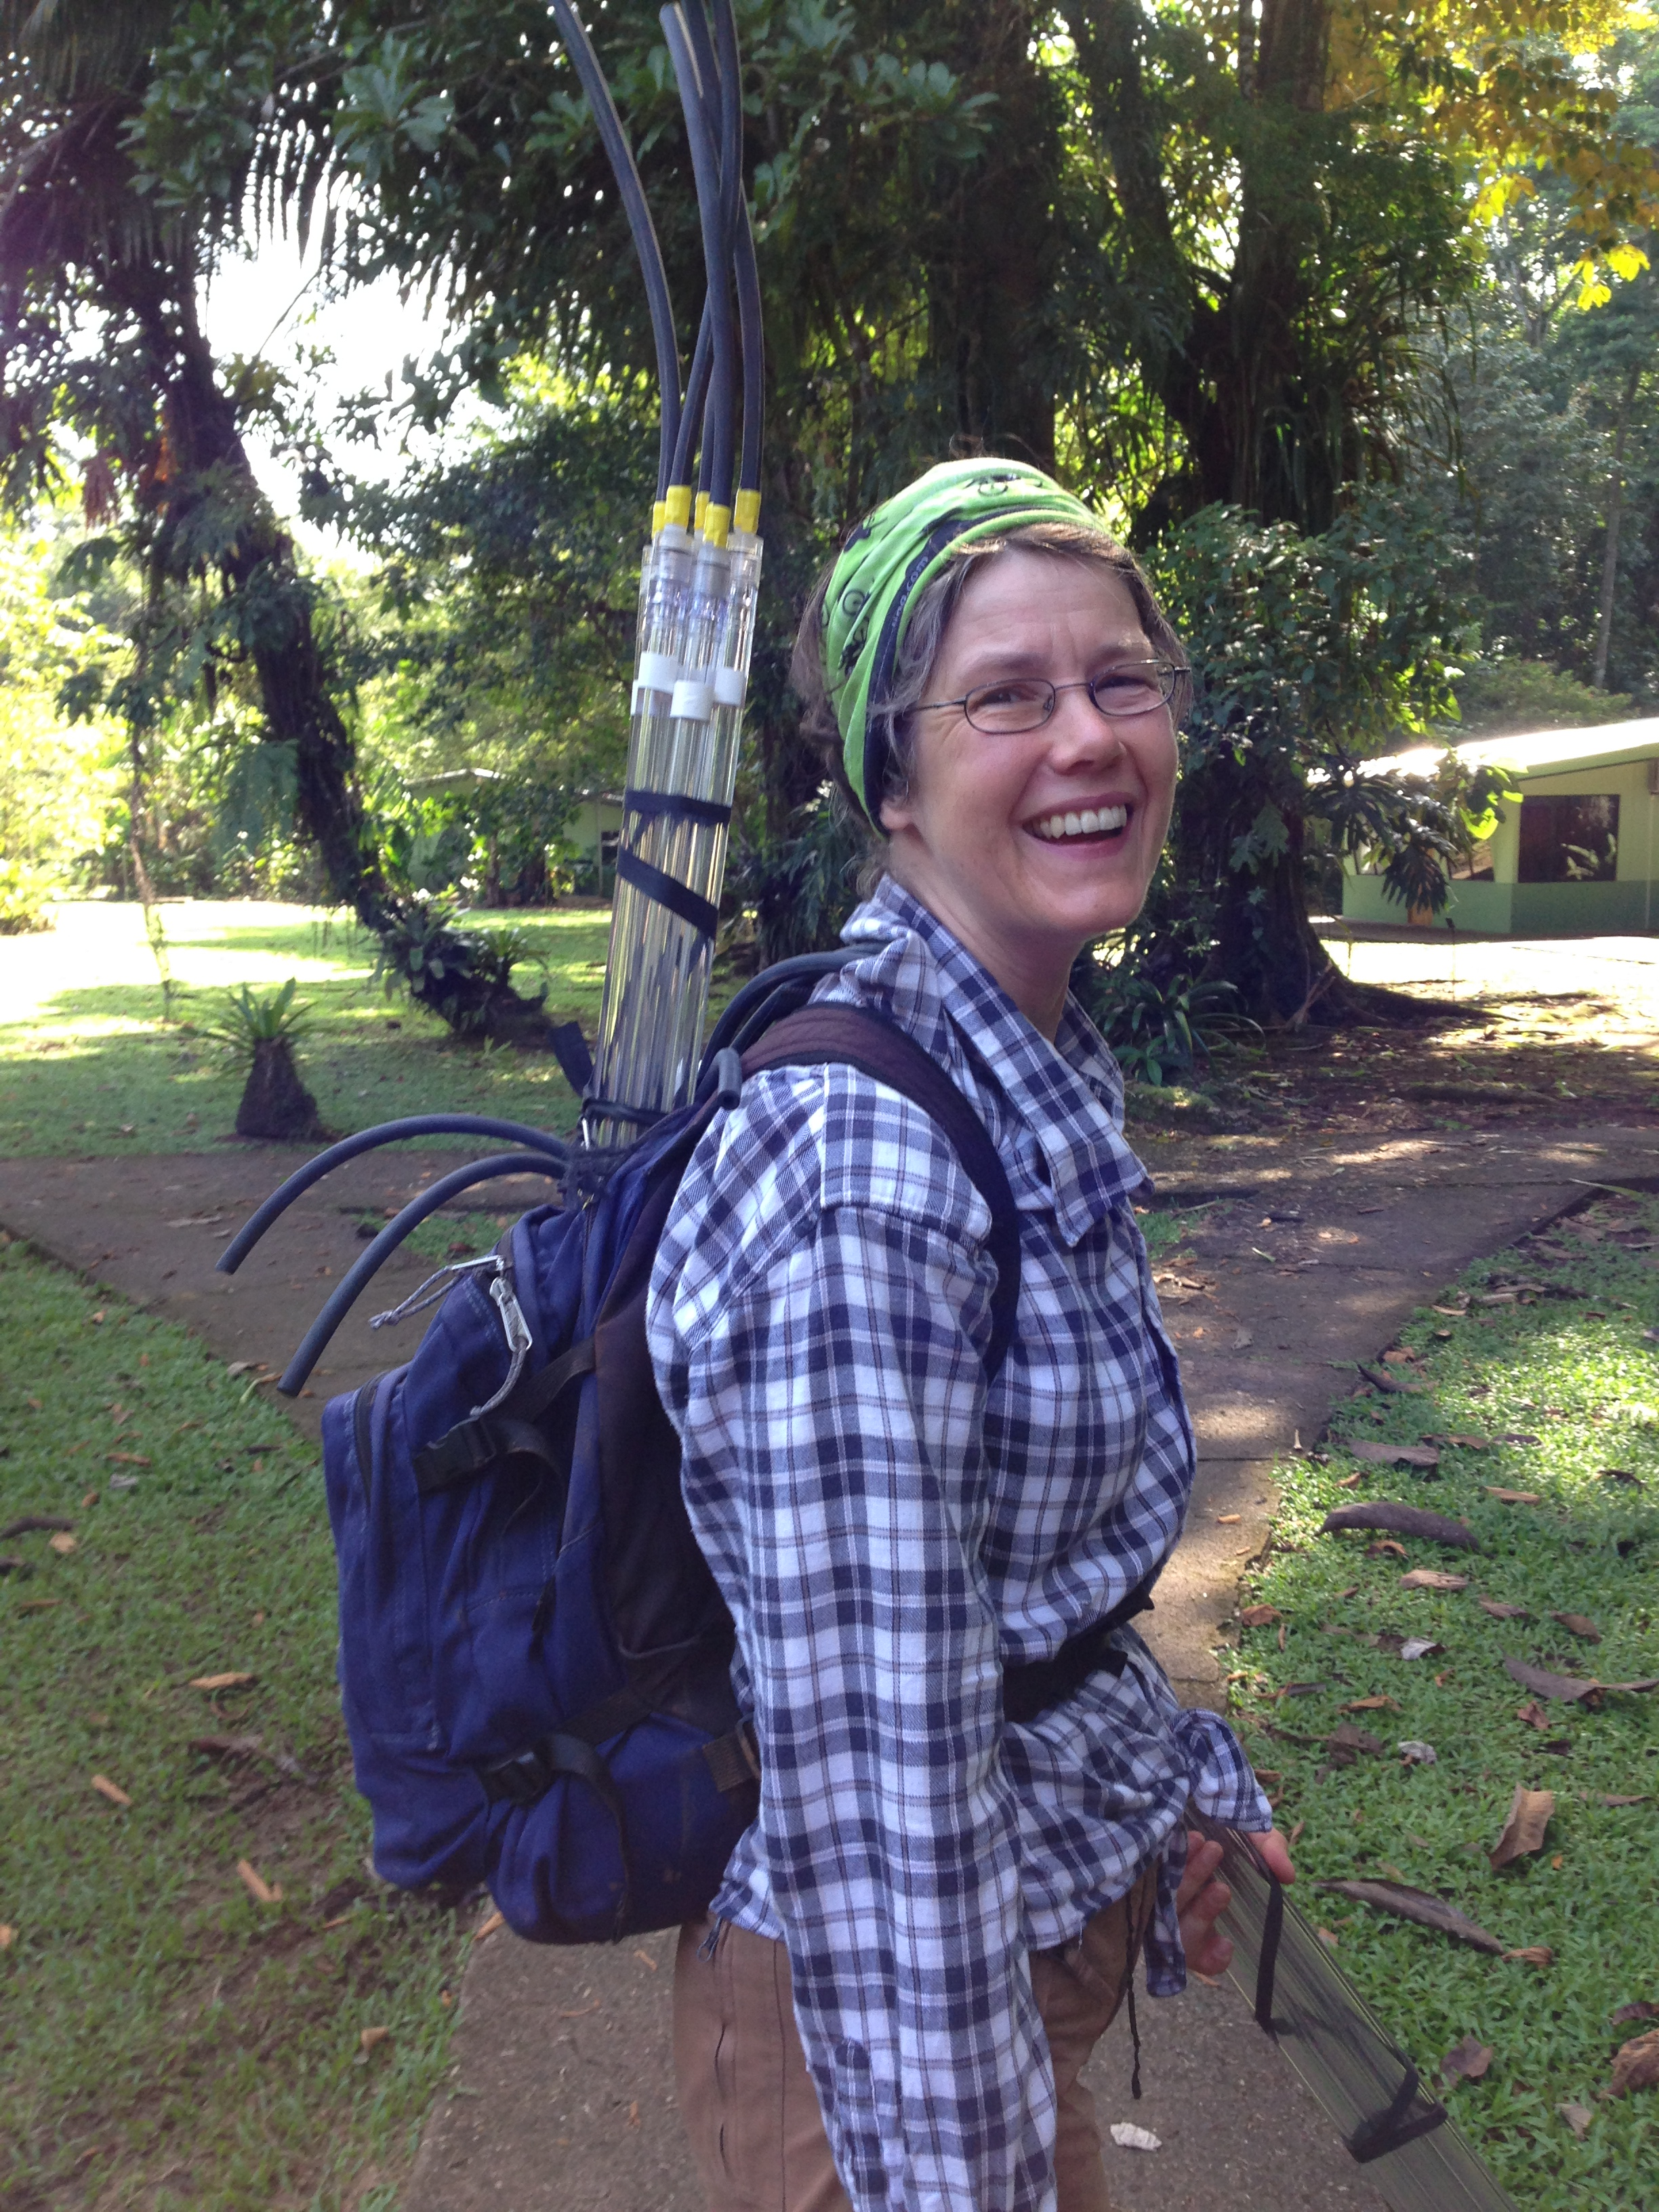 Dr. Luitgard Schwendenmann, University of Auckland, New Zealand   Luitgard brings with her years of experience studying soil carbon dynamics at La Selva. She is also the project lysimeter guru and will be examining carbon losses, especially in dissolved organic and inorganic forms.